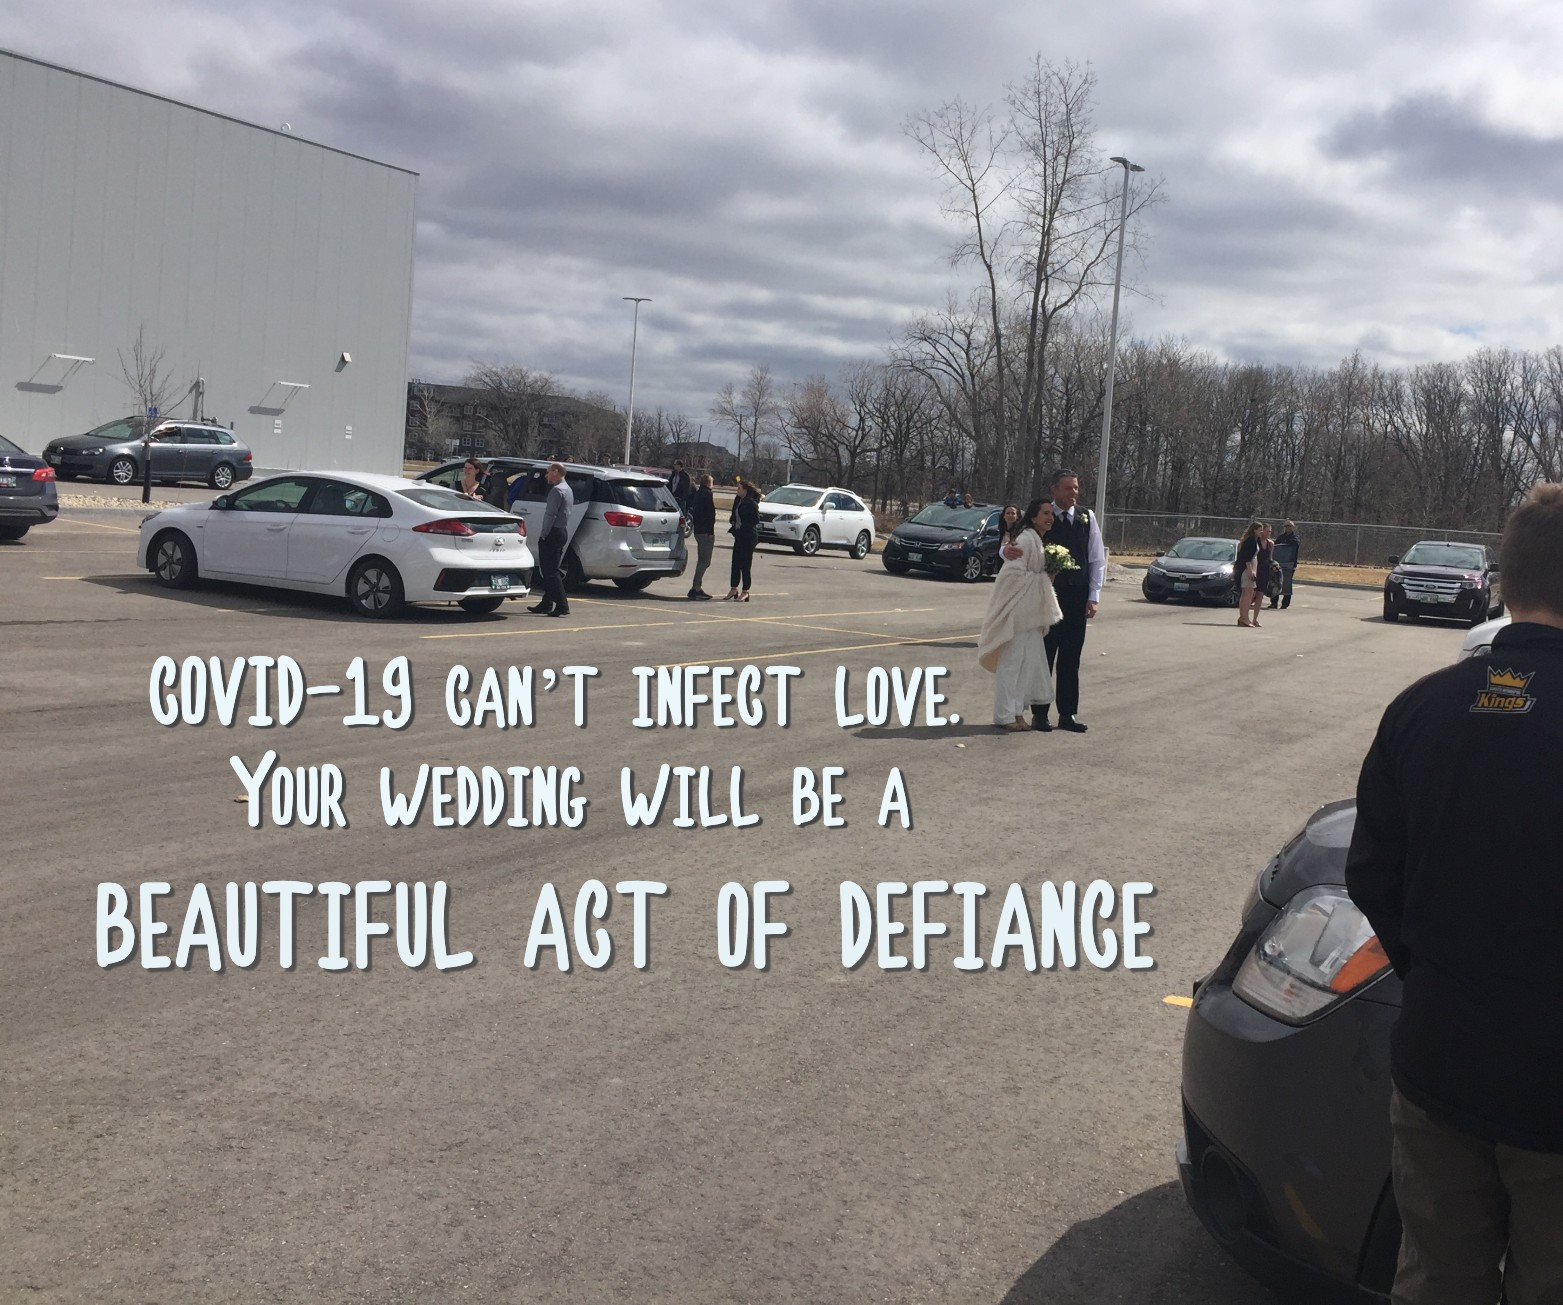 Covid-19 can't infect love. Your wedding will be a beautiful act of defiance.